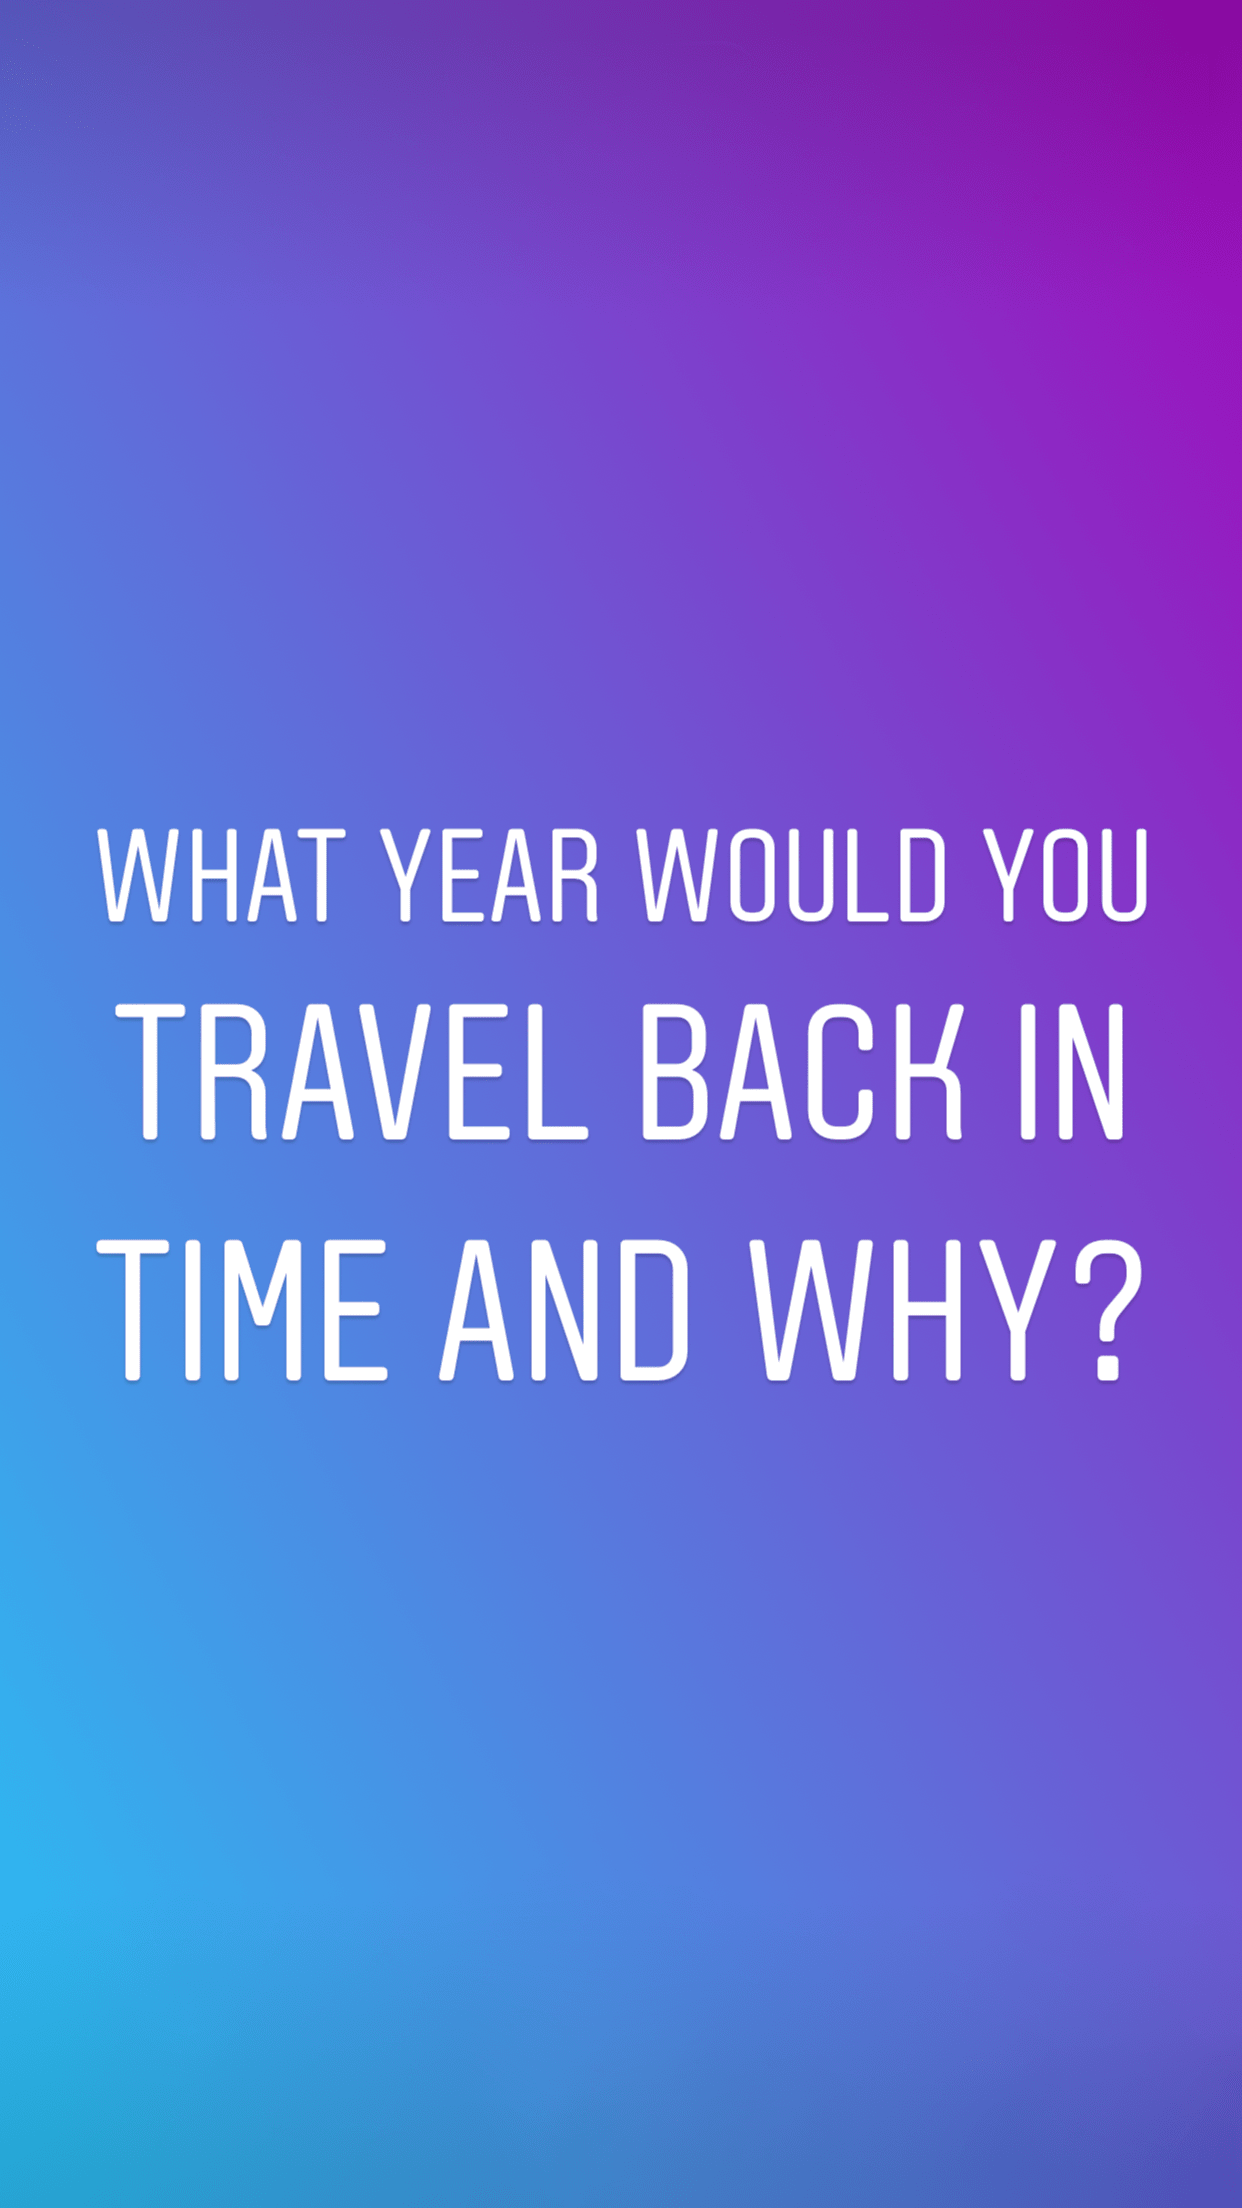 instagram stories template image to engage with your followers - what year would you travel back in time and why?